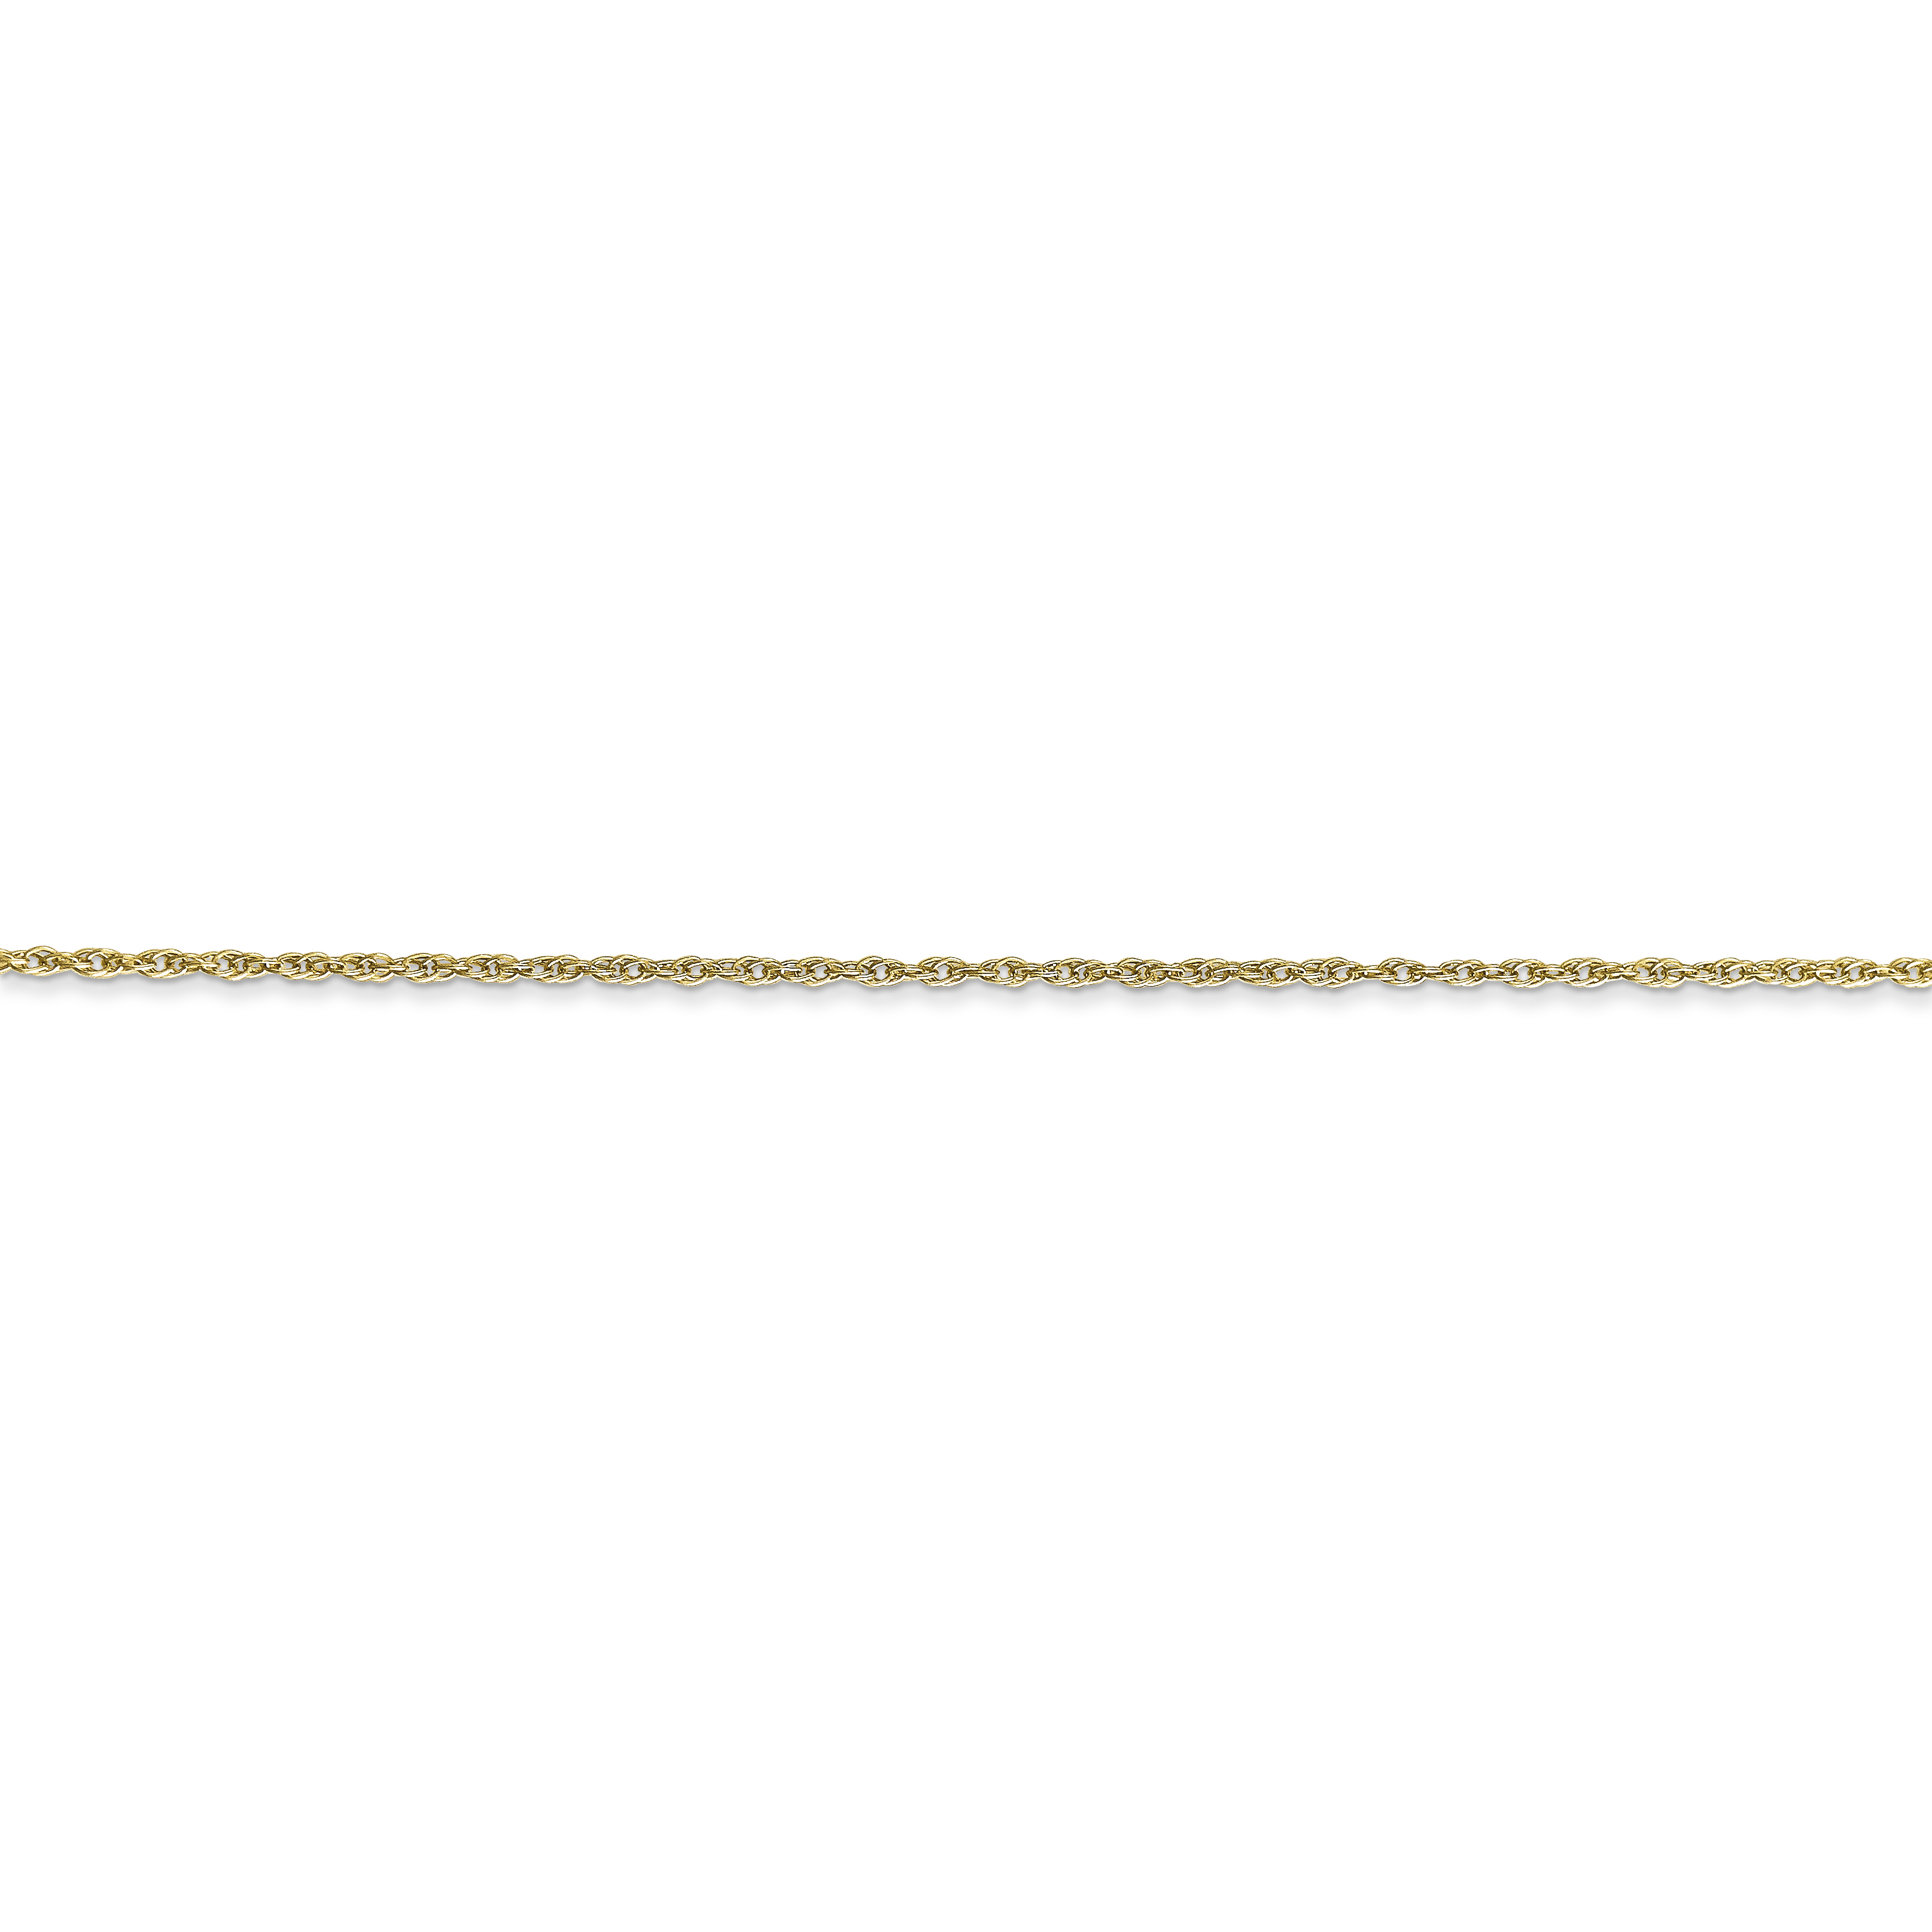 10k White Gold .8mm Lite Baby Link Rope Chain Necklace 18 Inch Pendant Charm Fine Jewelry For Women Gifts For Her